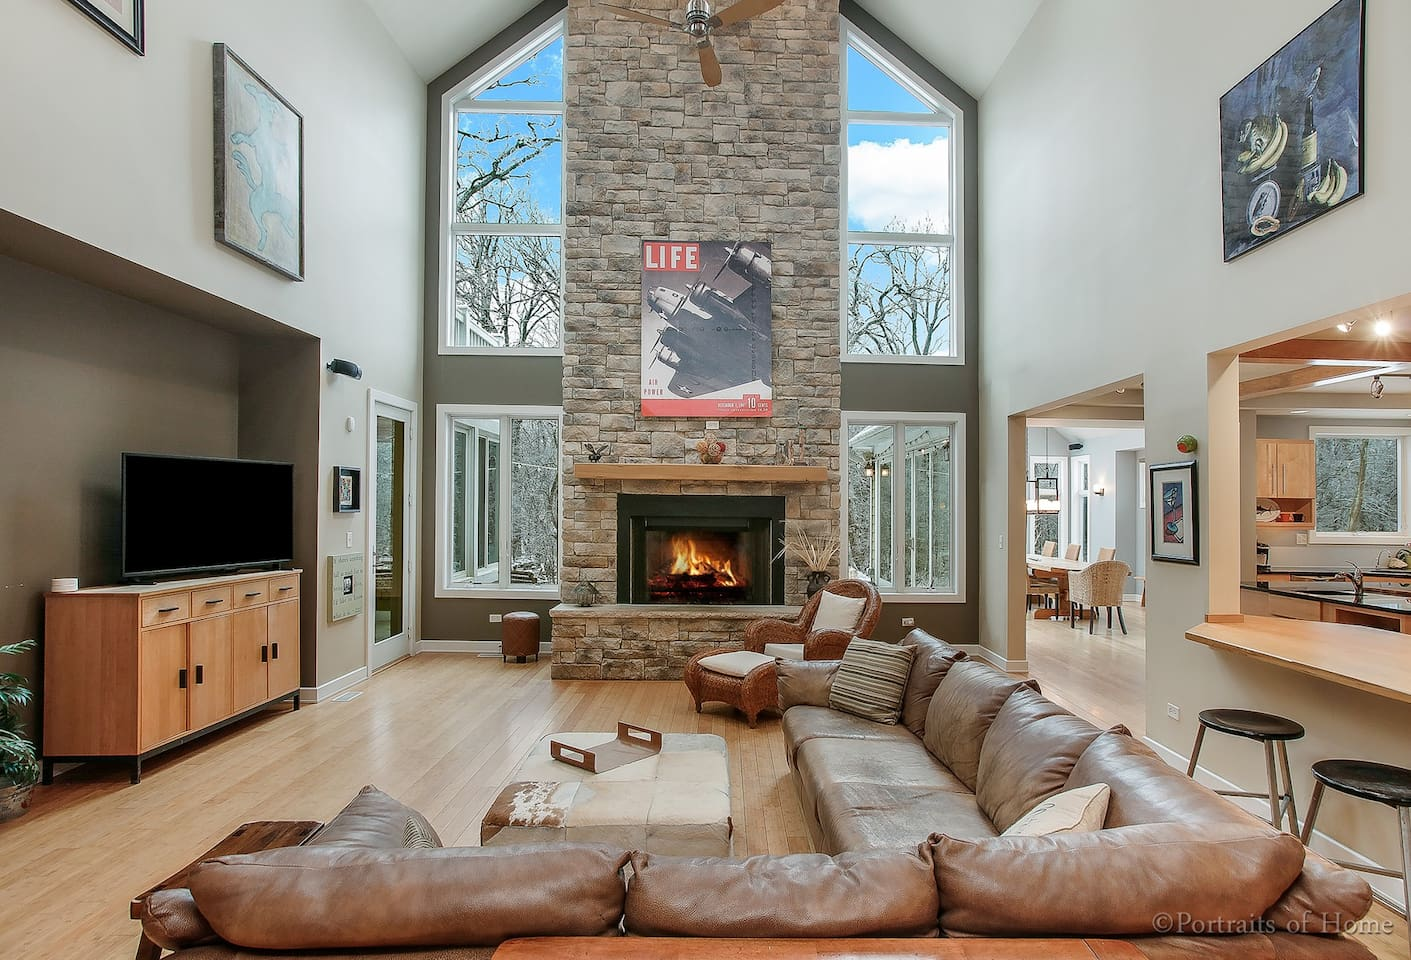 The Living Room flows into the Kitchen to the right, and the 3 seasons Dining Room behind the Kitchen. This is an open Floor Plan layout flooded with natural light! The floor to ceiling glazing overlooks the woods and backyard.